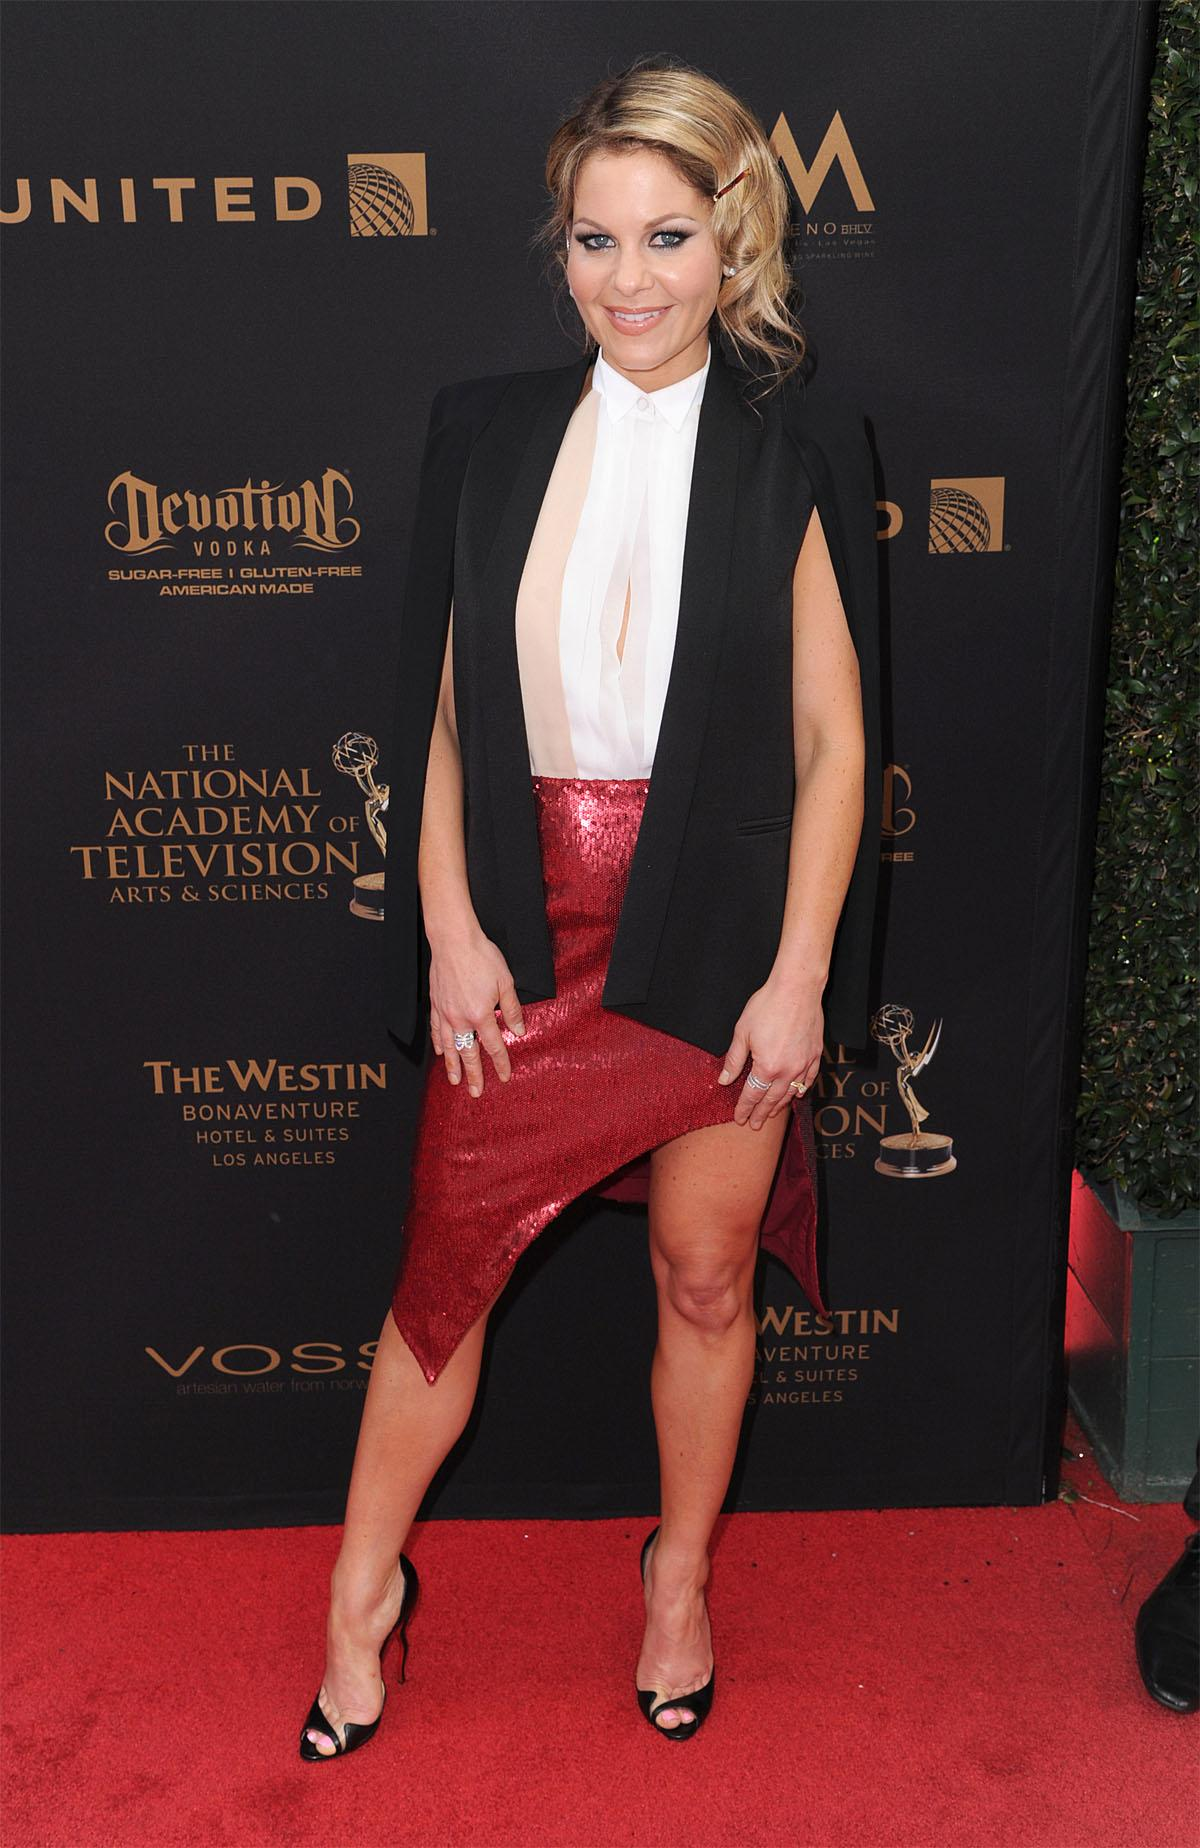 http://static-24.sinclairstoryline.com/resources/media/00b55982-006d-492c-923c-a52719ad713a-43rd_Annual_Daytime_Emmy_Awards___Arrivals__scottskomotv.com_12.jpg